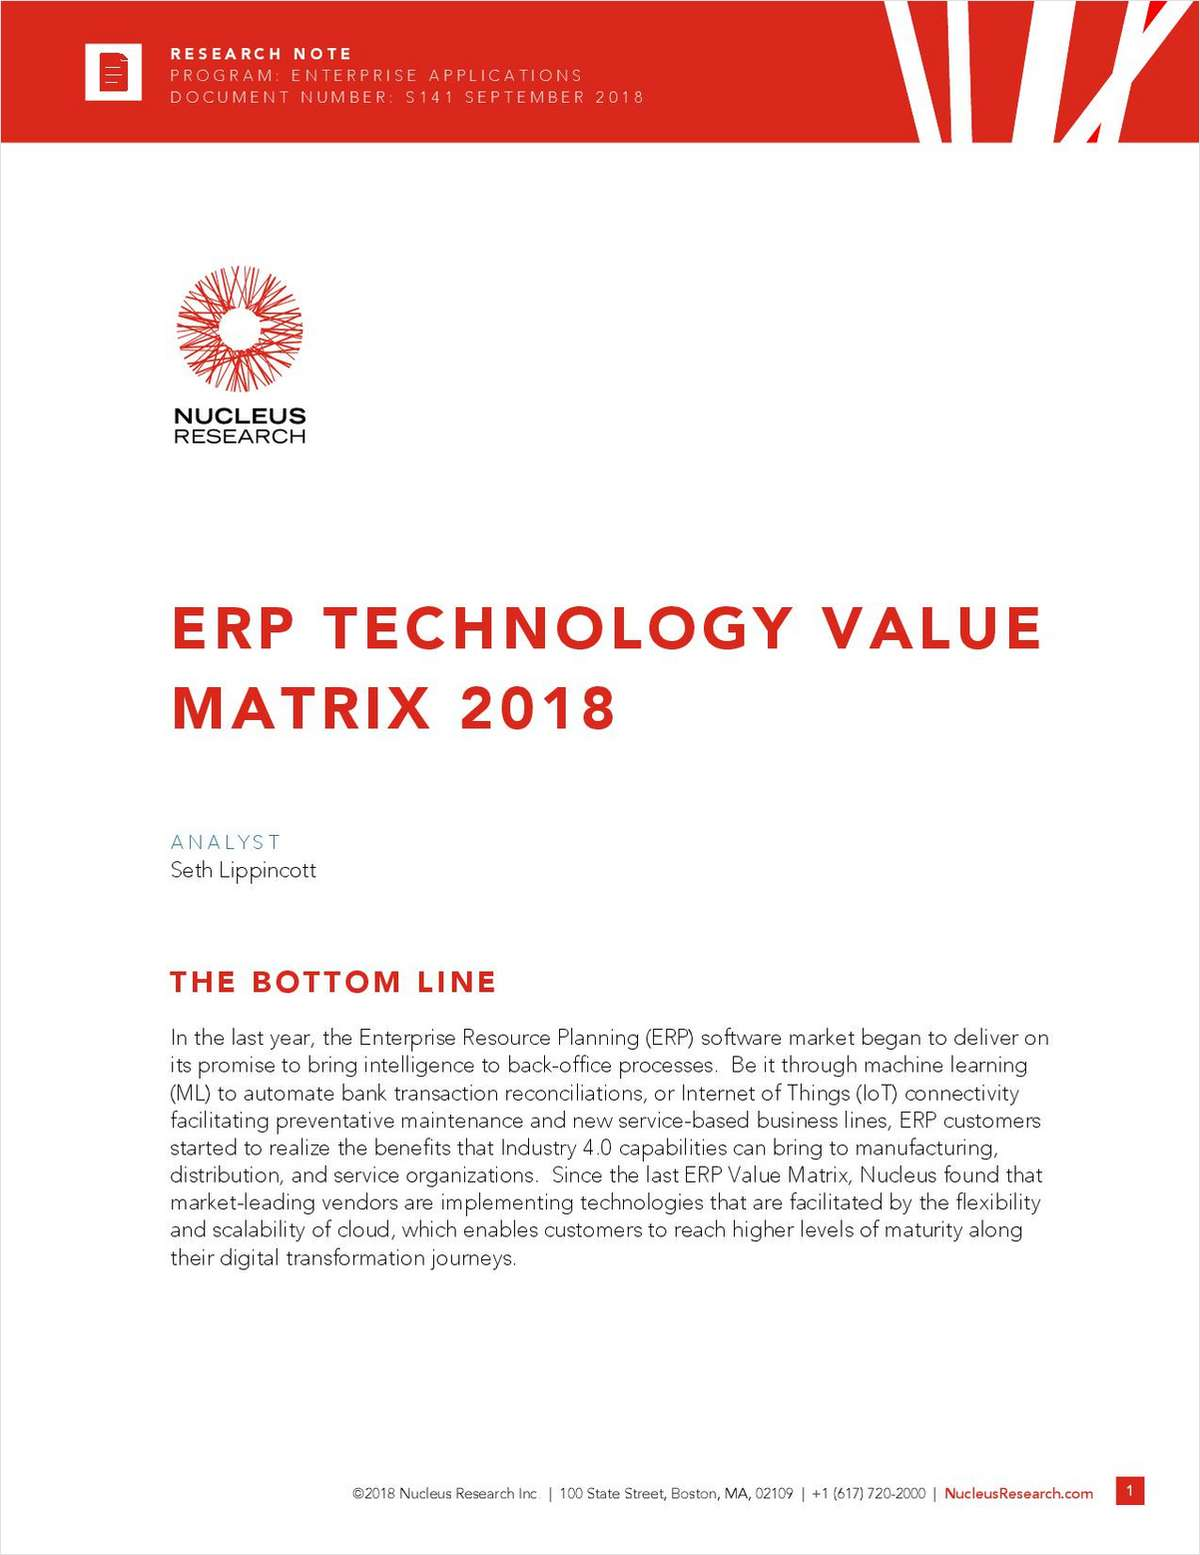 Nucleus Research's 2018 ERP Value Matrix